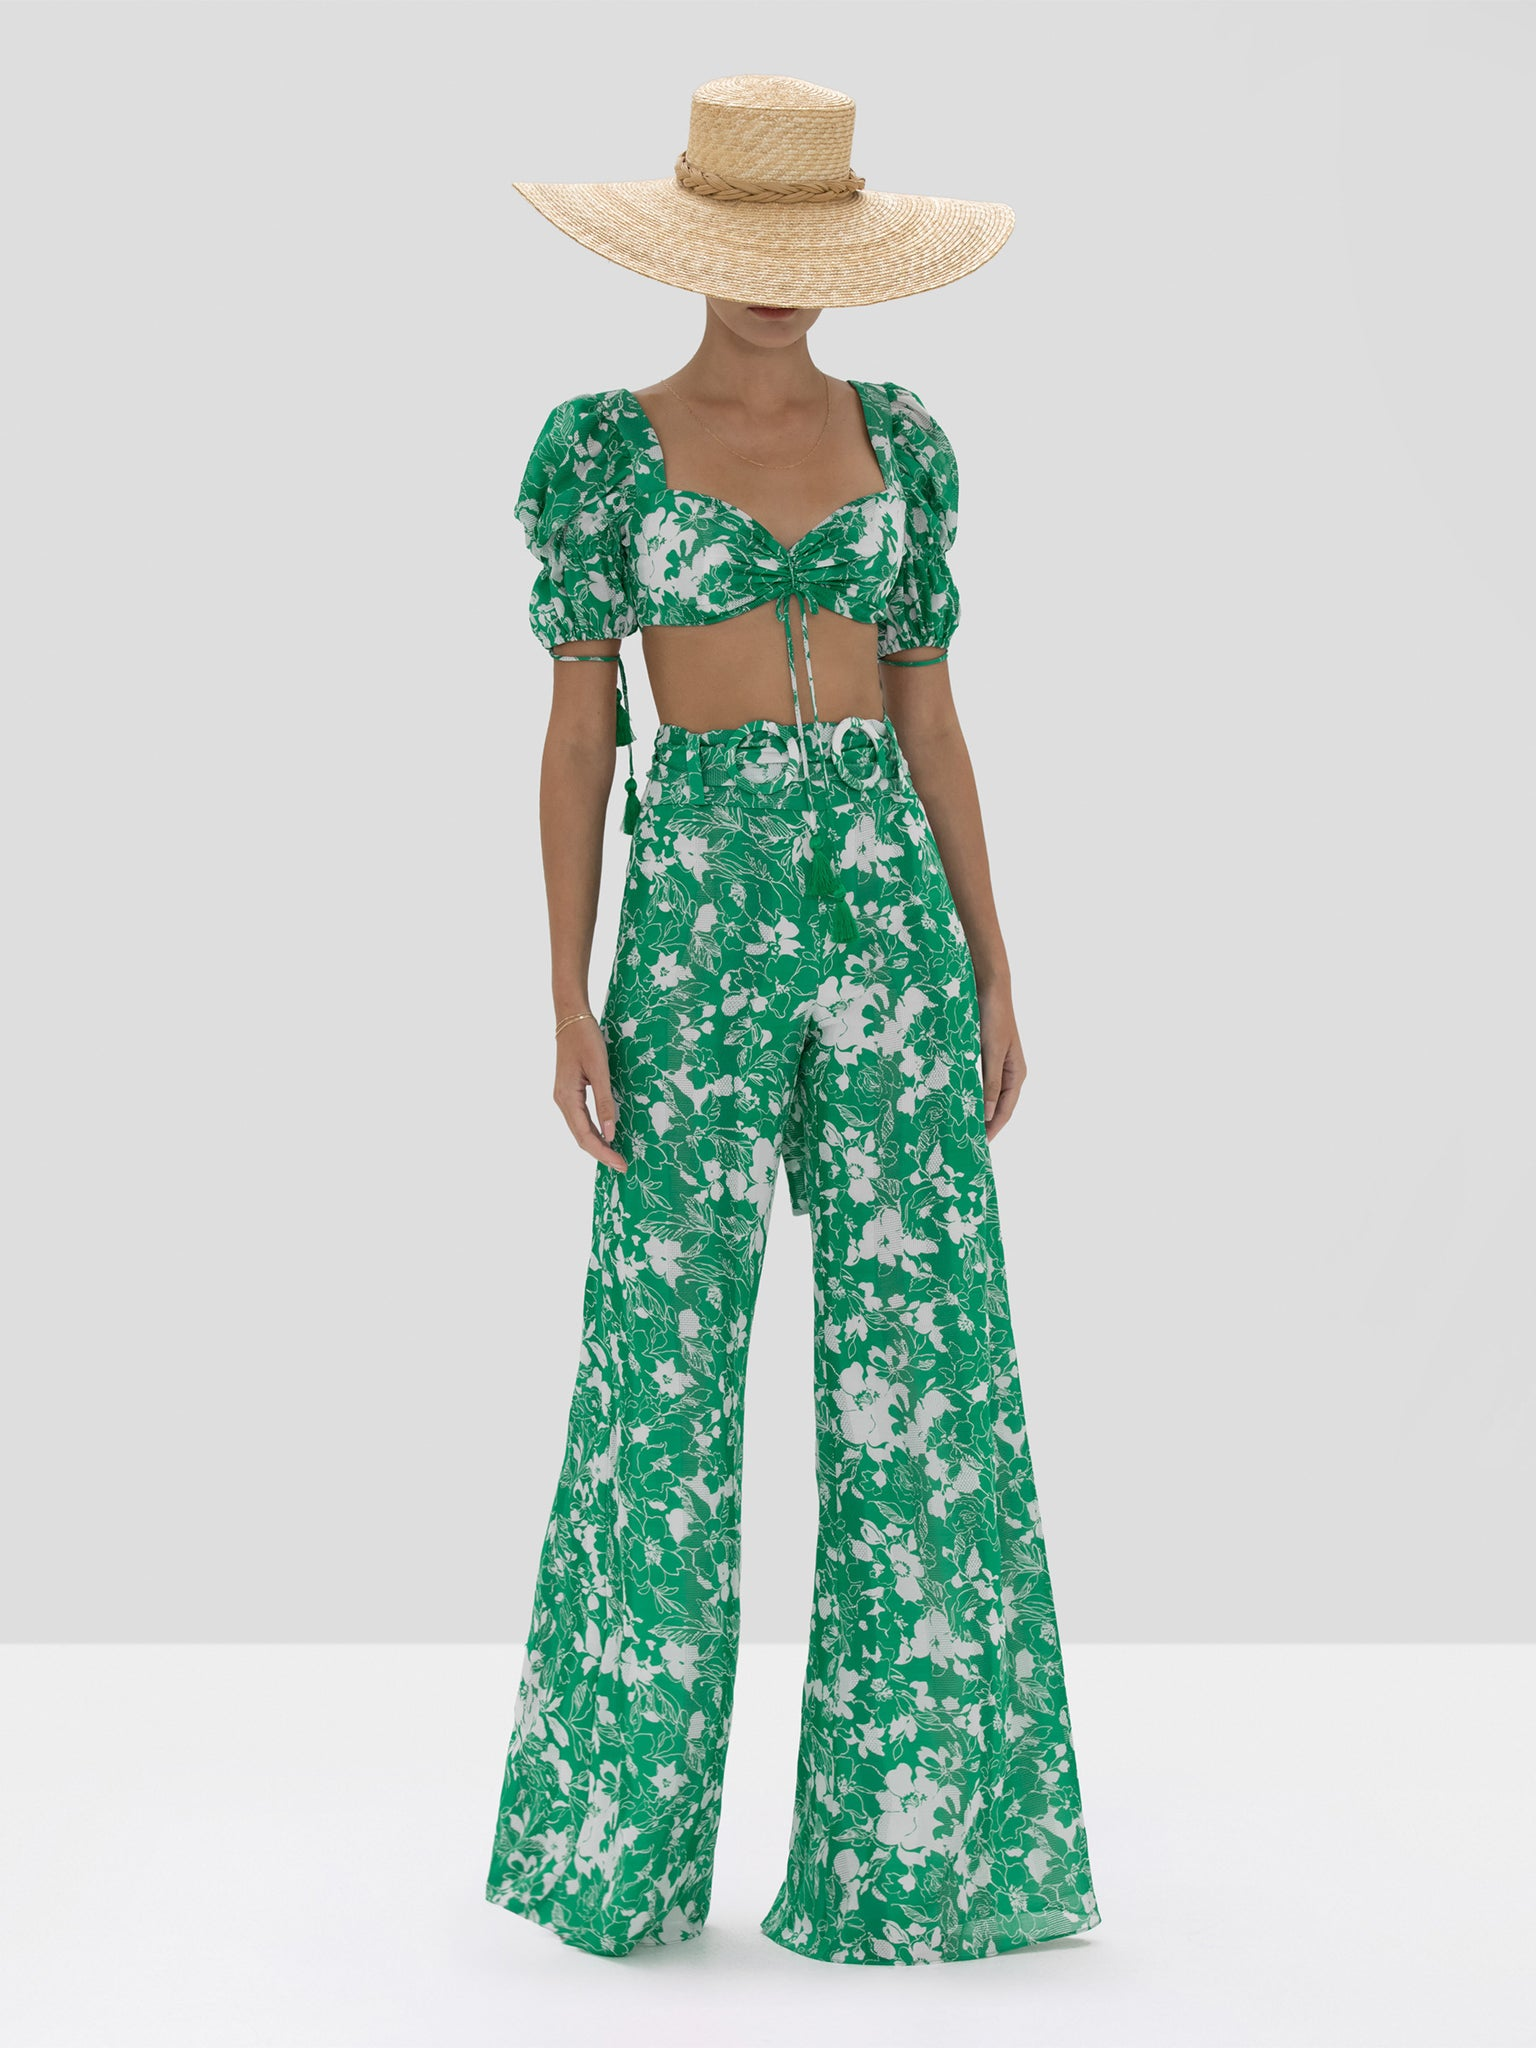 """Hover Image"" The Shel Pants in Emerald Floral from the Spring Summer 2020 Ready To Wear Collection."